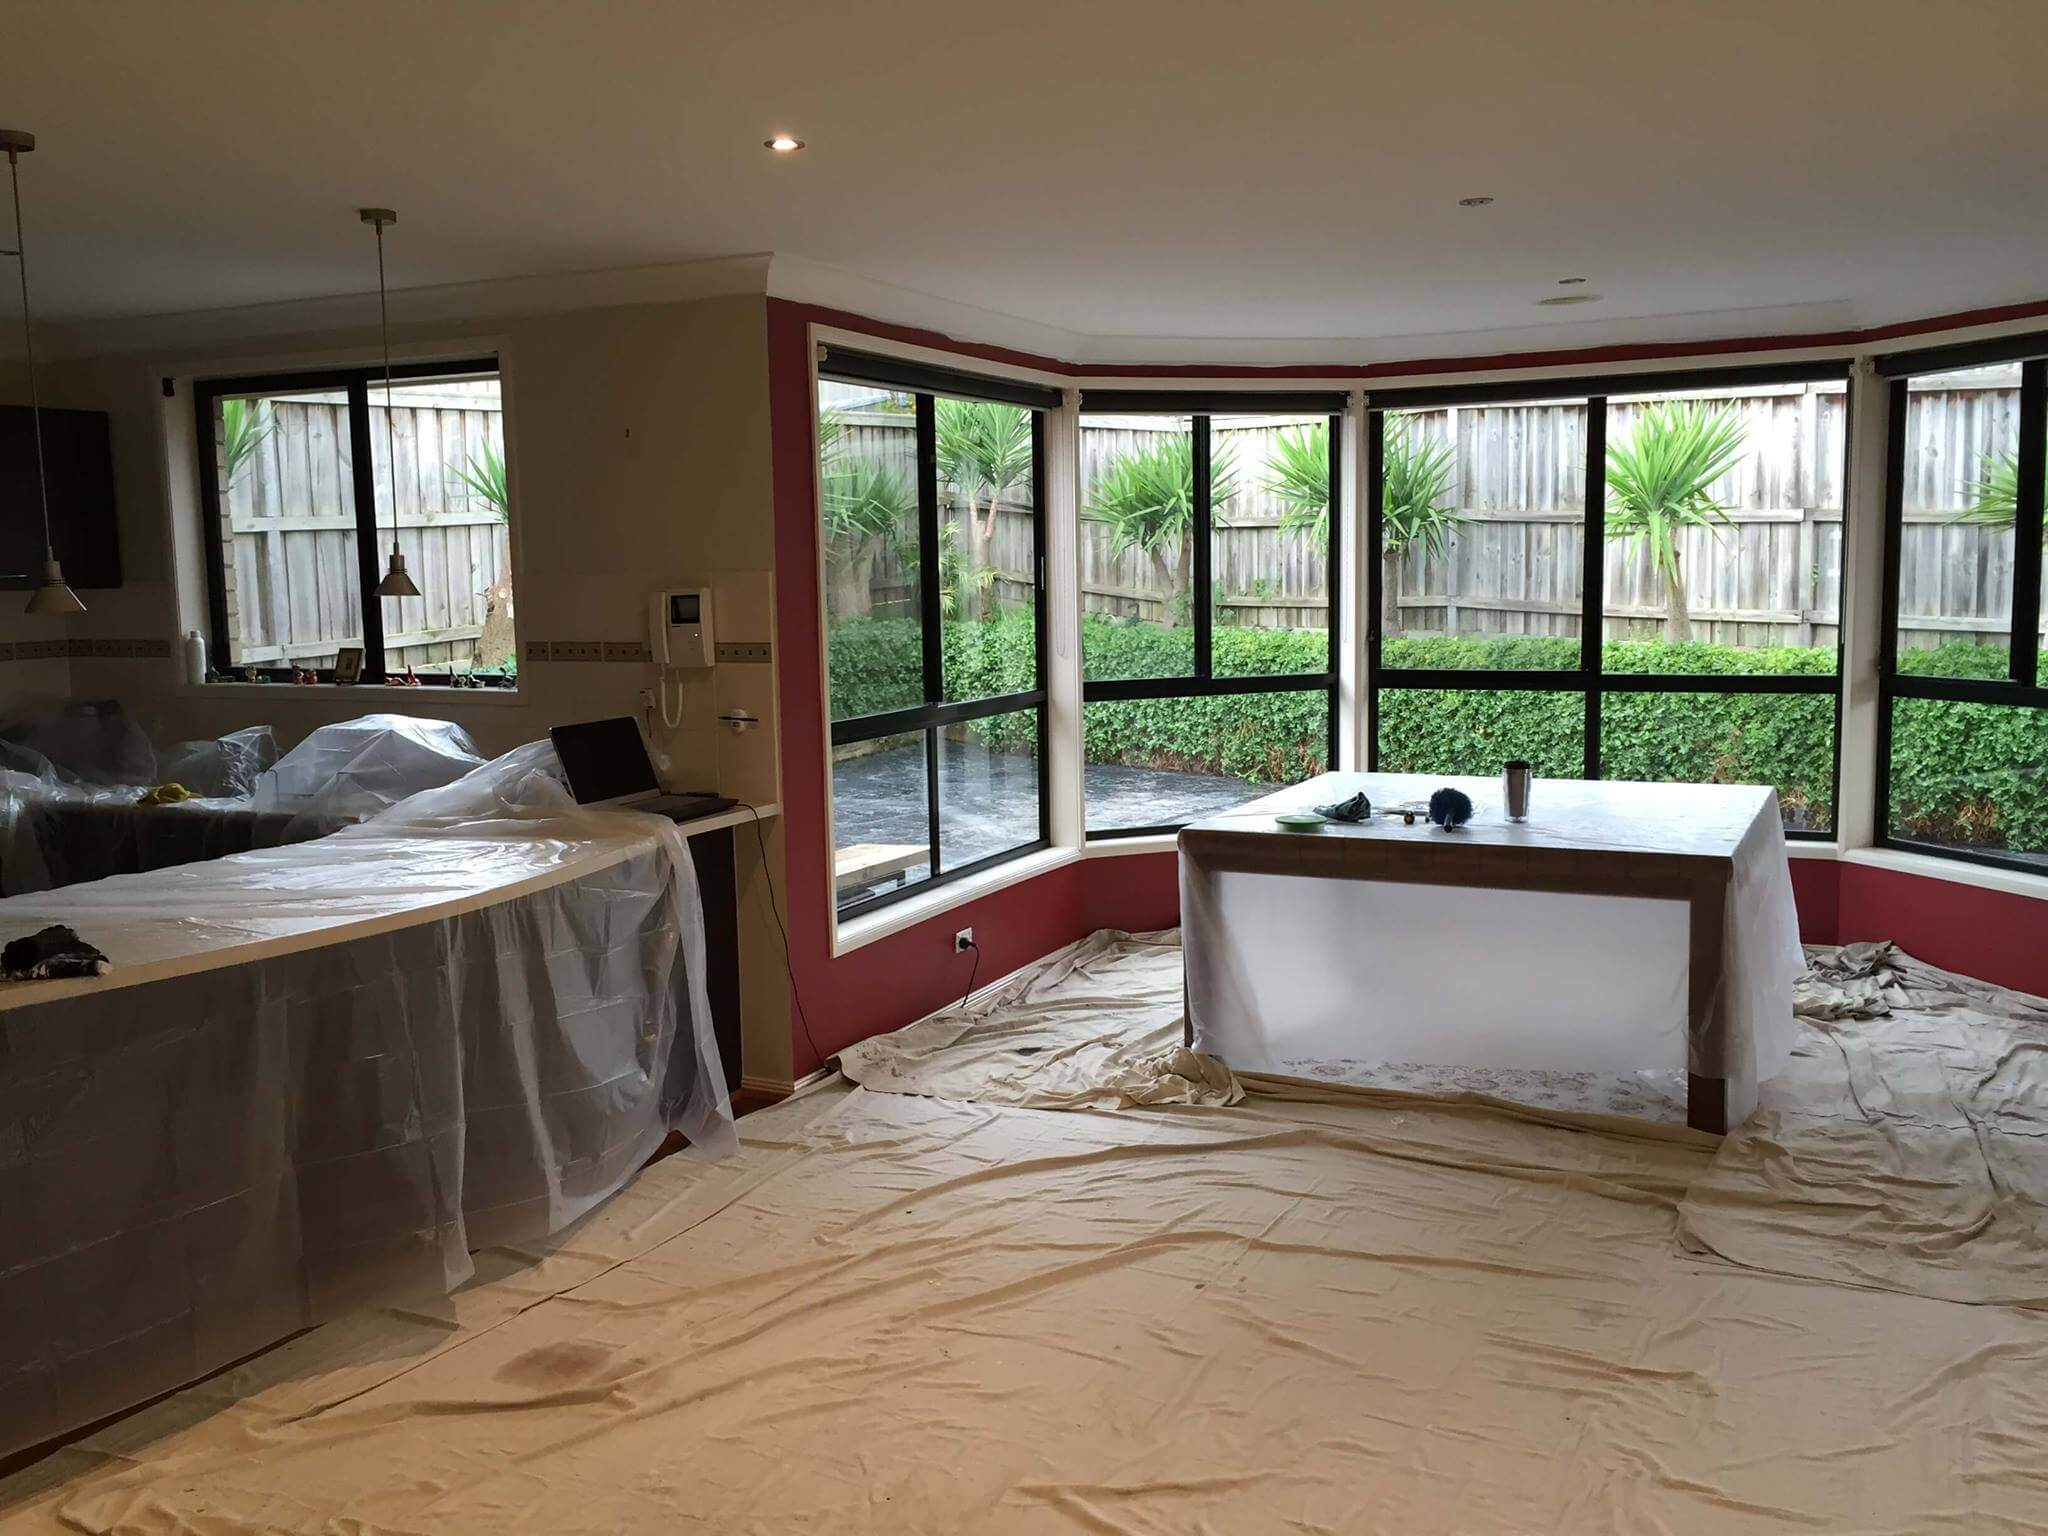 Residential Painting Service - Interior